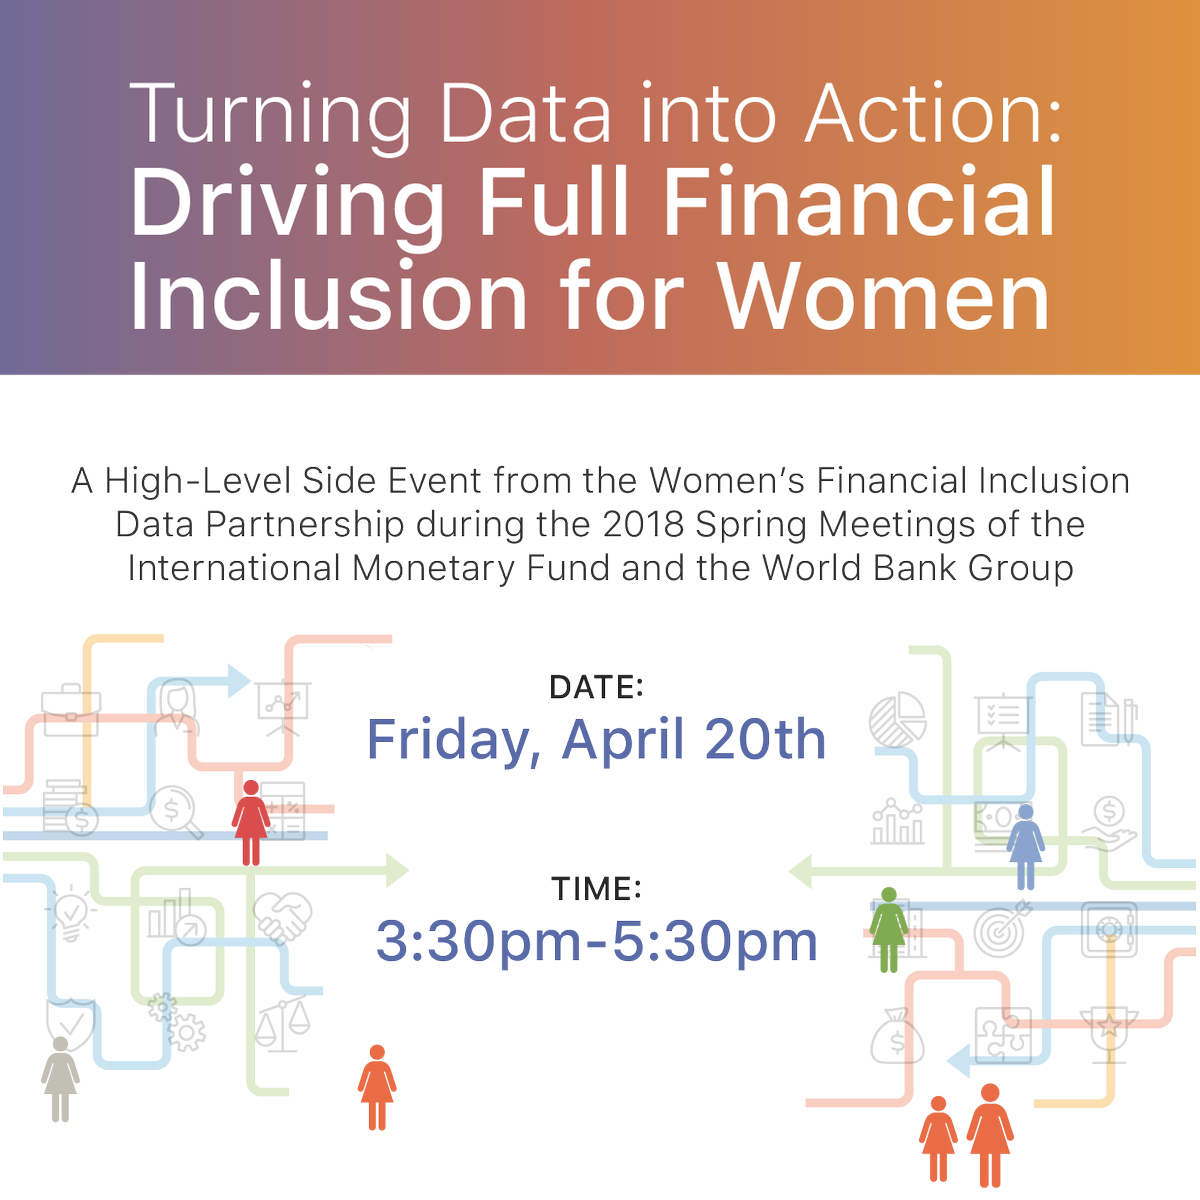 How can we use data to create real impact on women's #FinancialInclusion? Join the #WFID partnership for a live stream this Friday, April 20, at 3:30 PM to find out #SpringMeetings #IMFMeetings #WBGMeetings  https:// livestream.com/unfoundation/e vents/8162326 &nbsp; … <br>http://pic.twitter.com/zCapRnPP6v